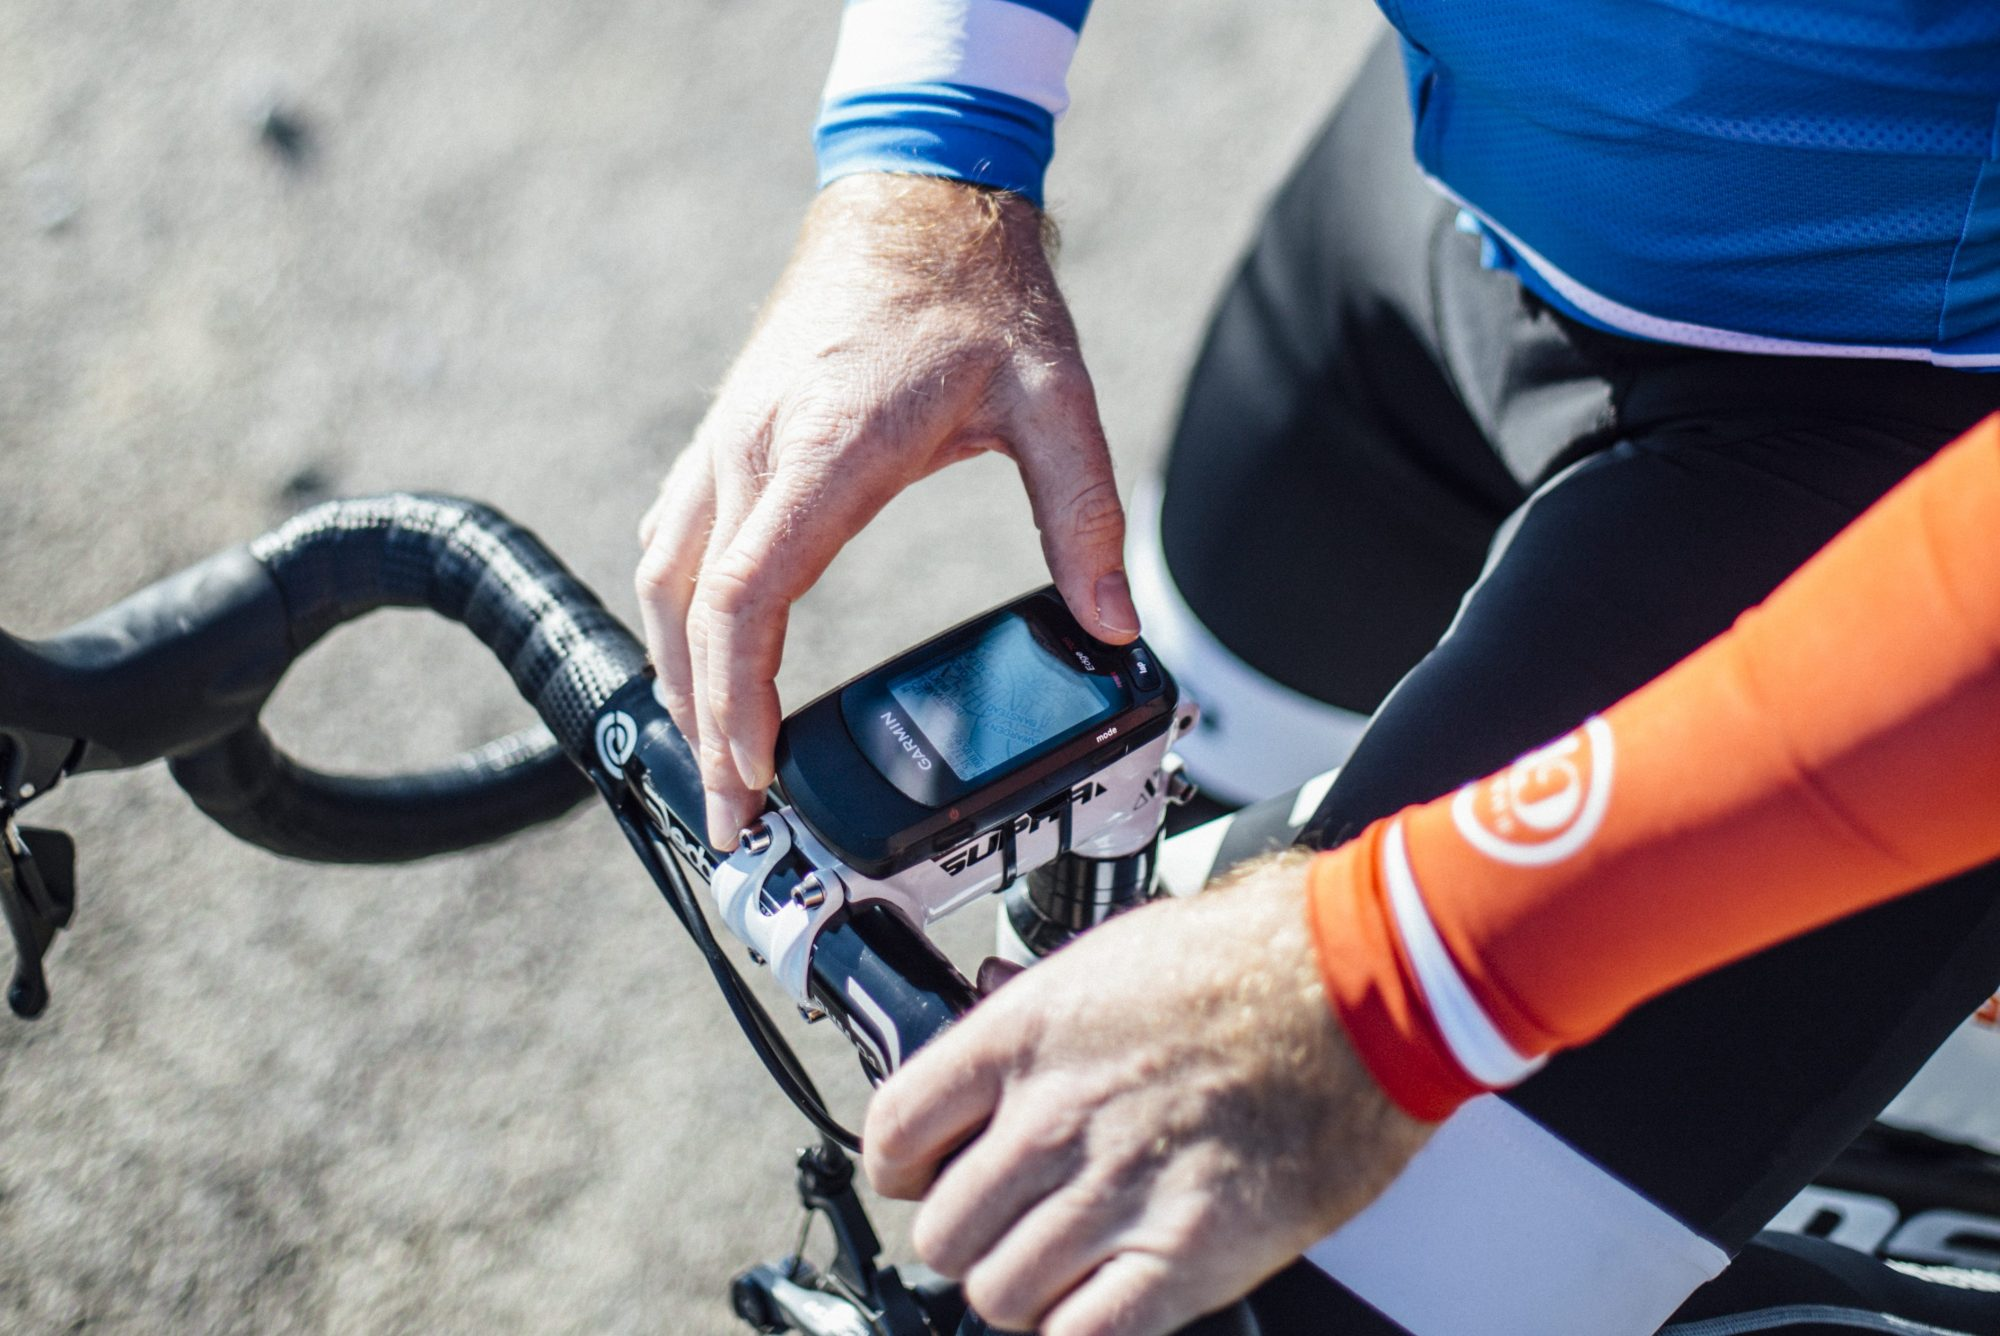 Best Garmin deals to help you make the most of your winter training